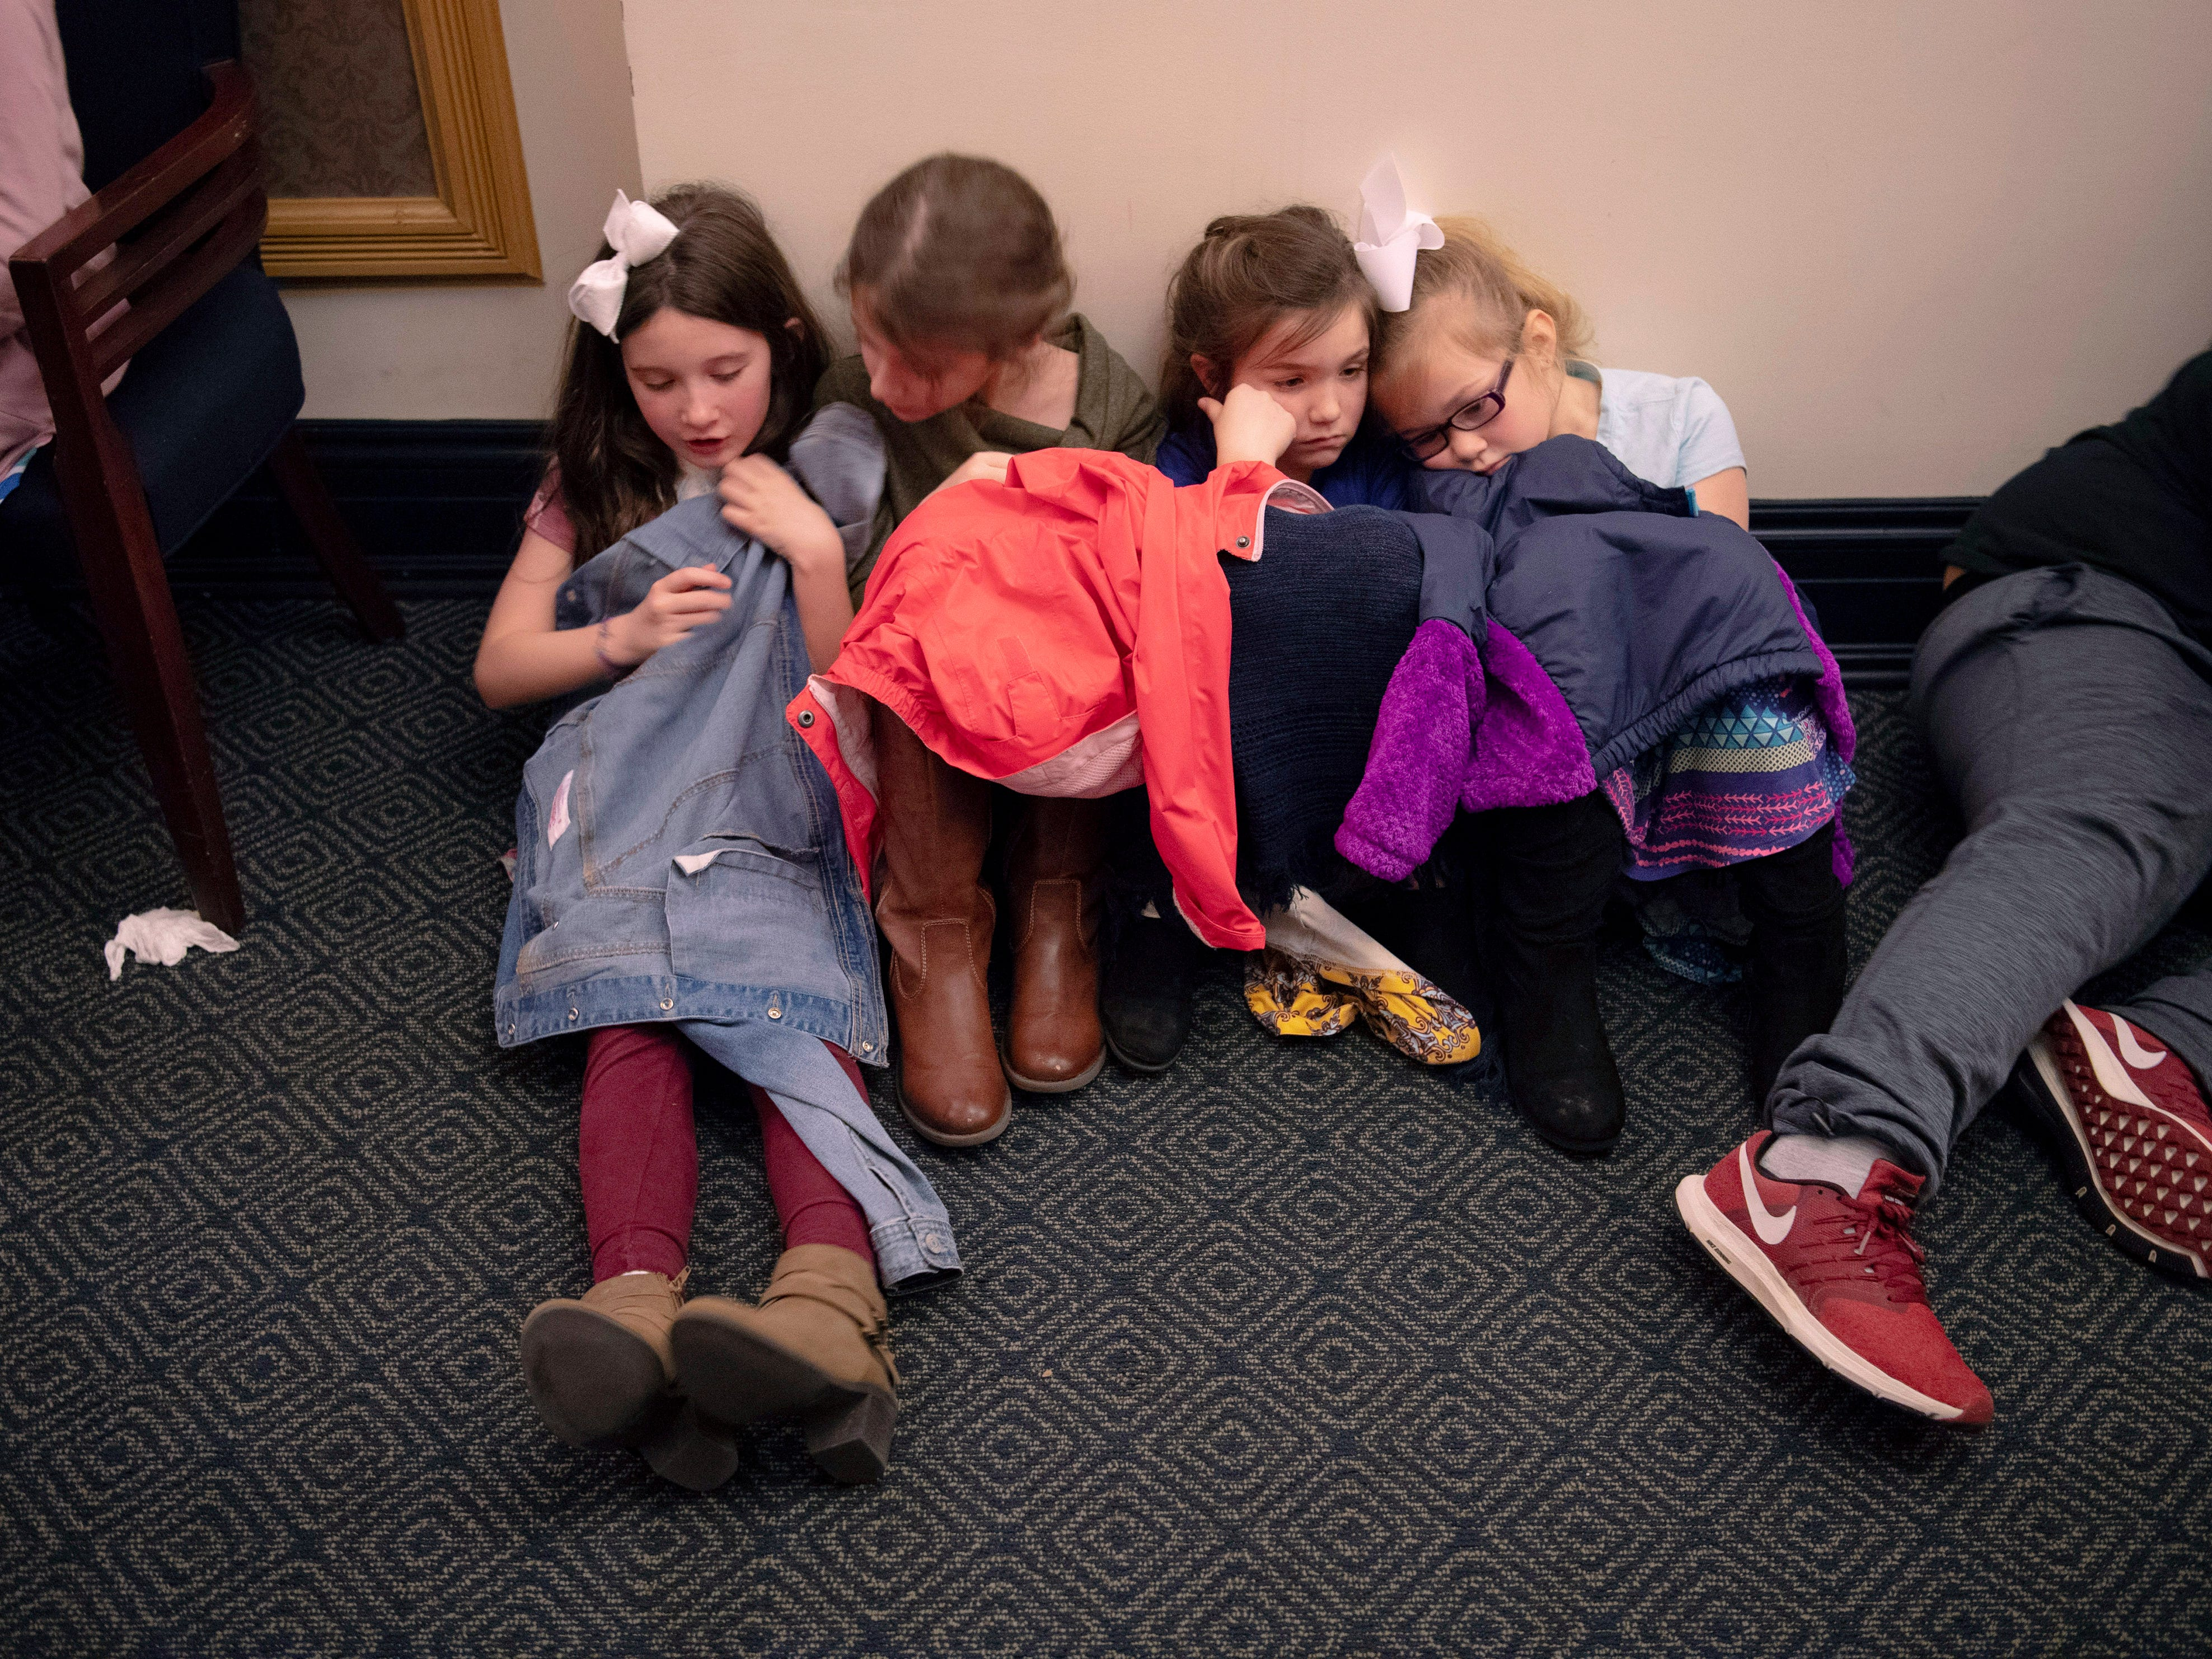 Cynthia Heights Elementary School students, from left, Ashlynn Blanchard, 9, Amelia Brendel, 9, Emma Tenbarge, 8, and Kaleigh Volk, 8, wait out the tornado warnings from the hallway of The Victory Thursday morning. Evansville Philharmonic Orchestra made it through the first of their Young People's Concerts before a series of tornado warnings forced them to take shelter.